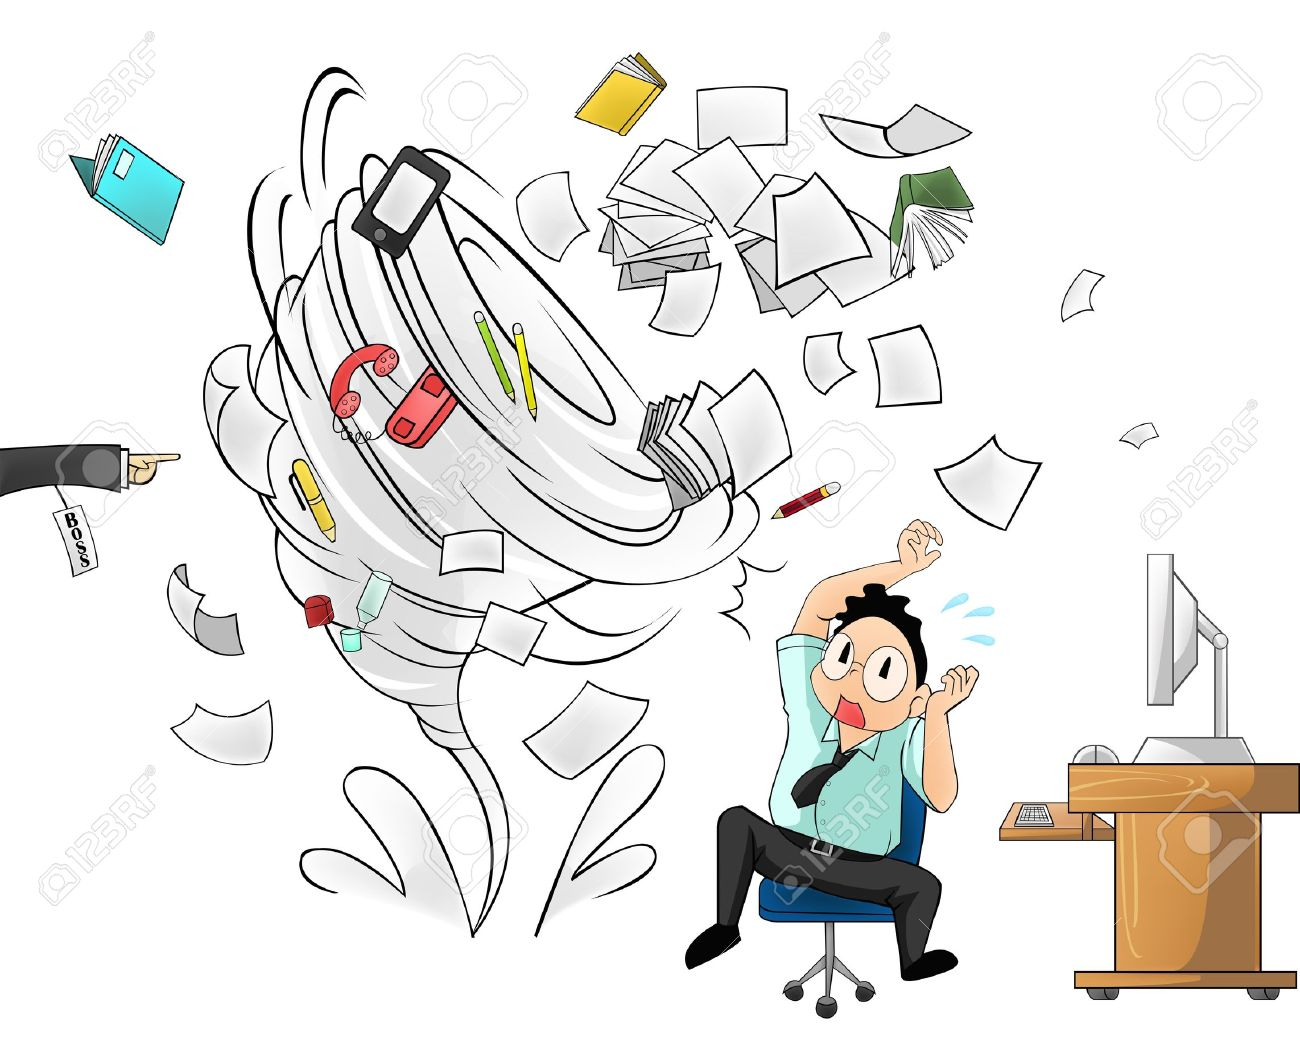 Hurricane of workload in the office - man version with boss order Stock Vector - 20681887